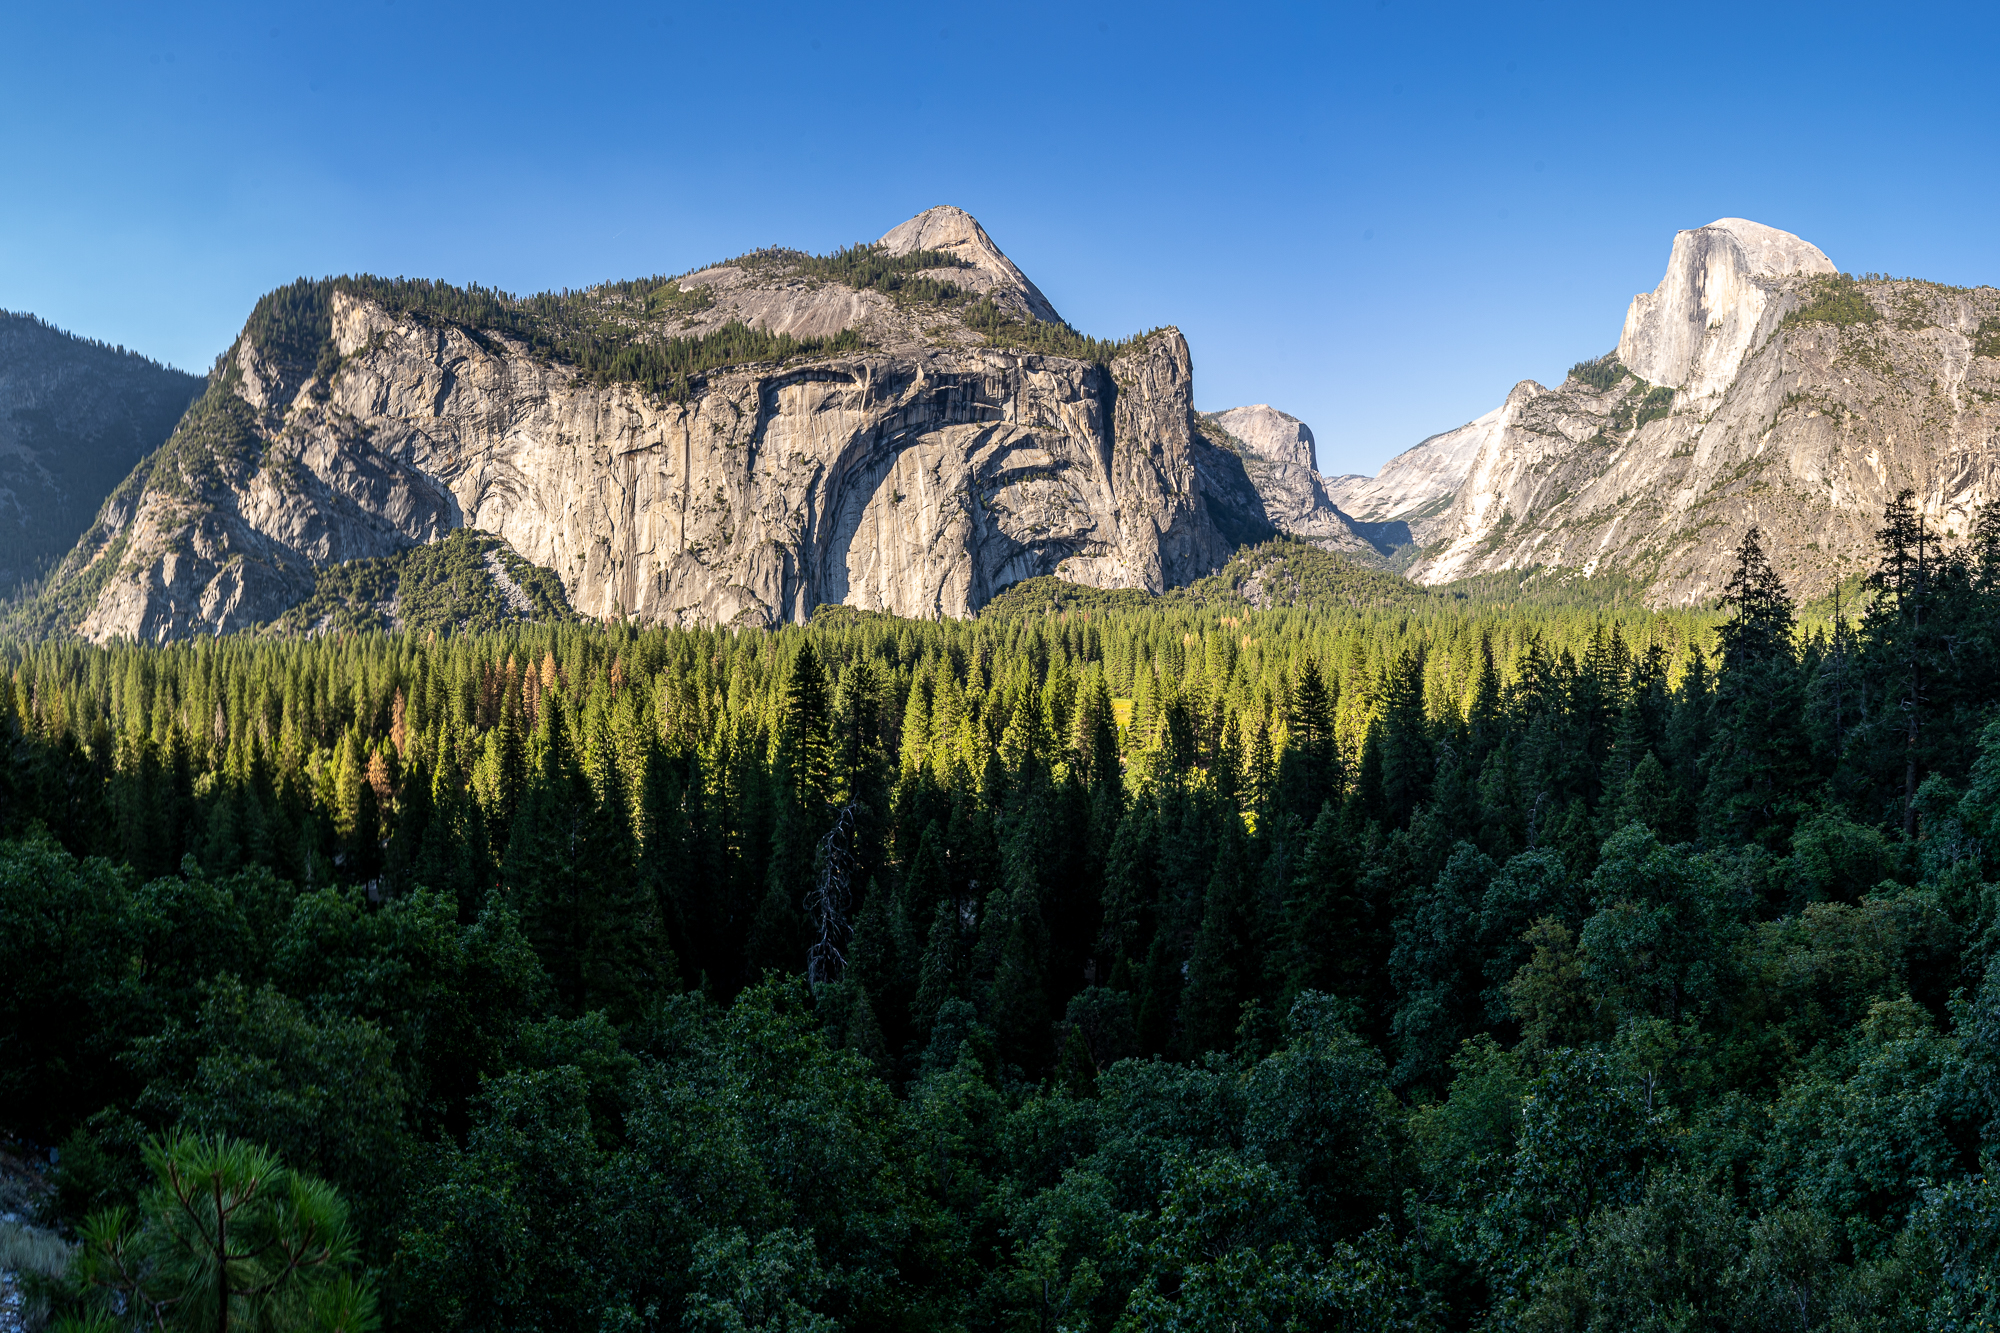 Yosemite Valley view - nearly unknown location, USA